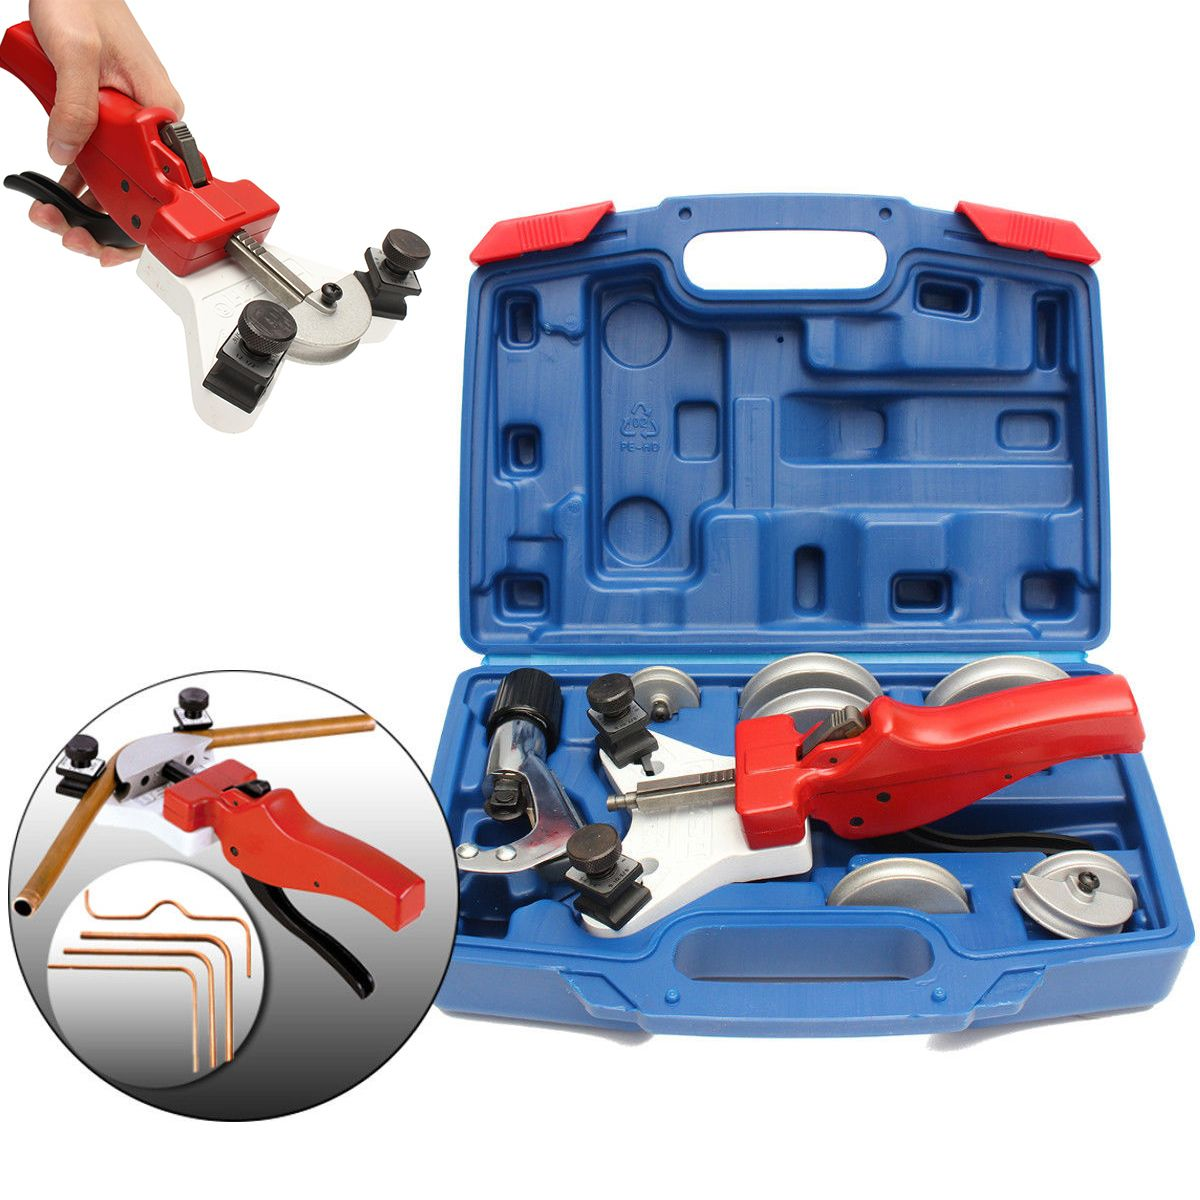 1 Set Manual Steel Pipe Tube Bender with Copper Cutter and Plastic Box For Cutting 15-22mm Tube